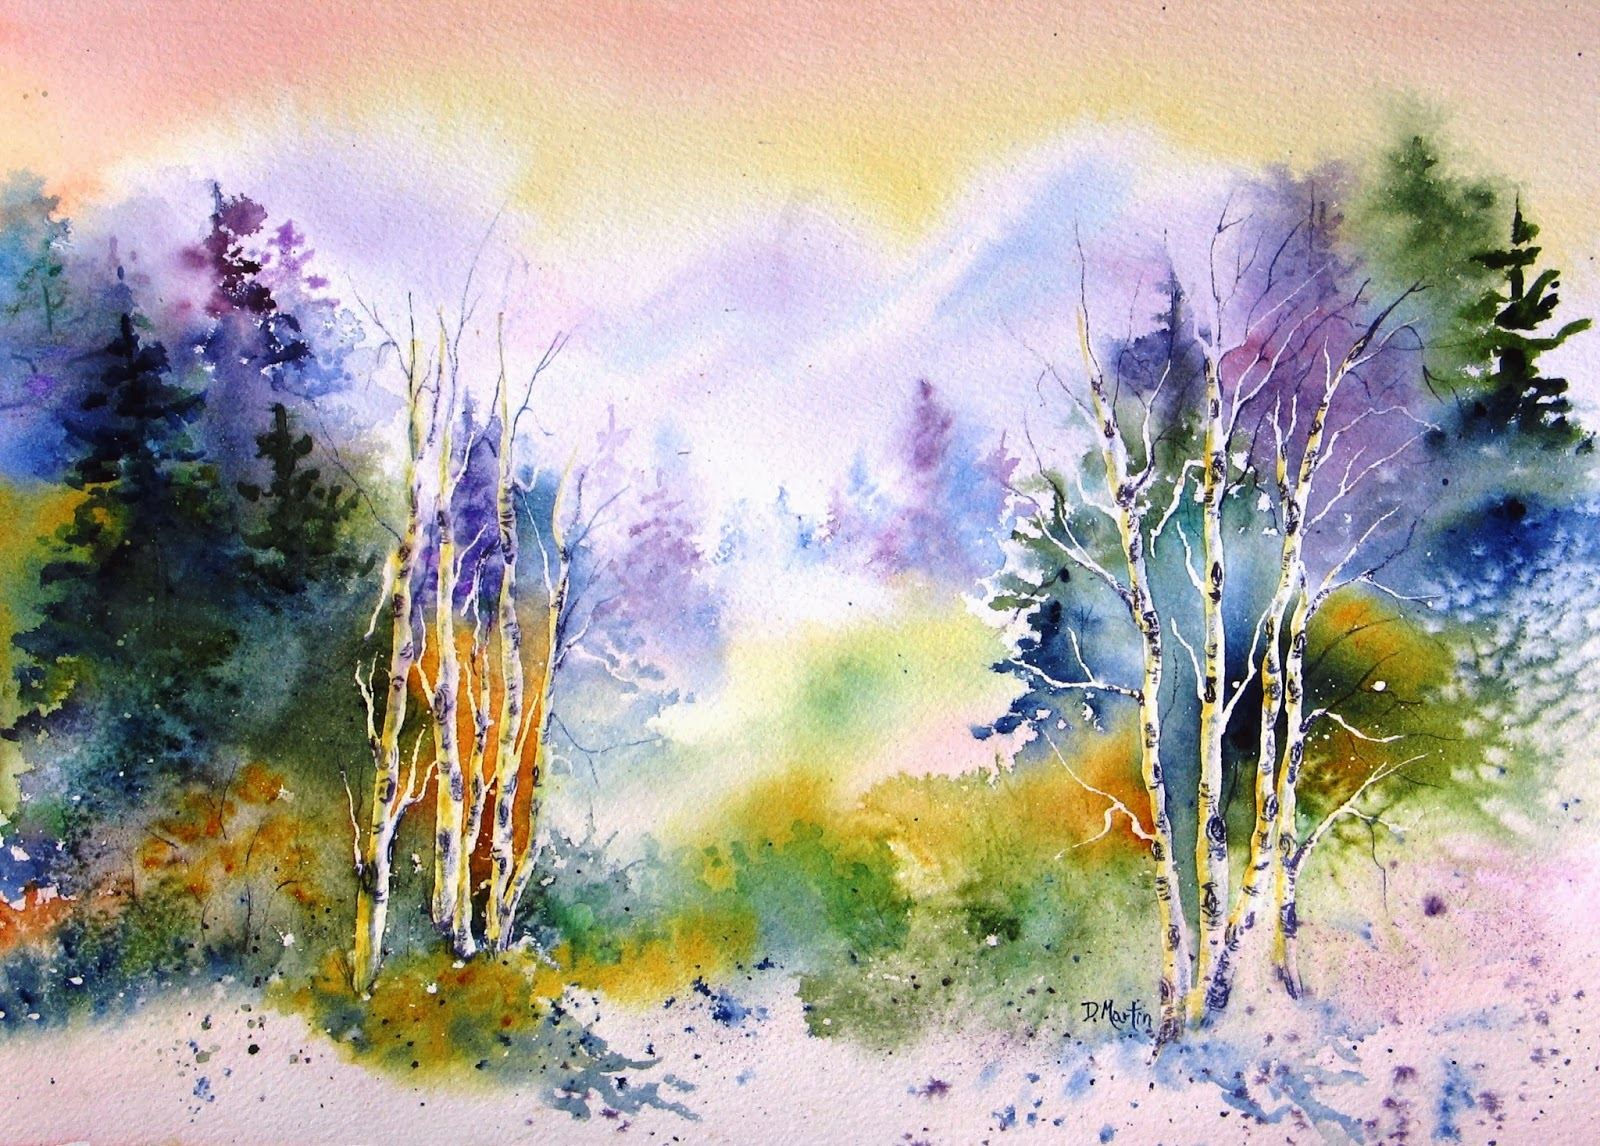 Donna l martin fine art watercolor landscape painting for Watercolor painting images